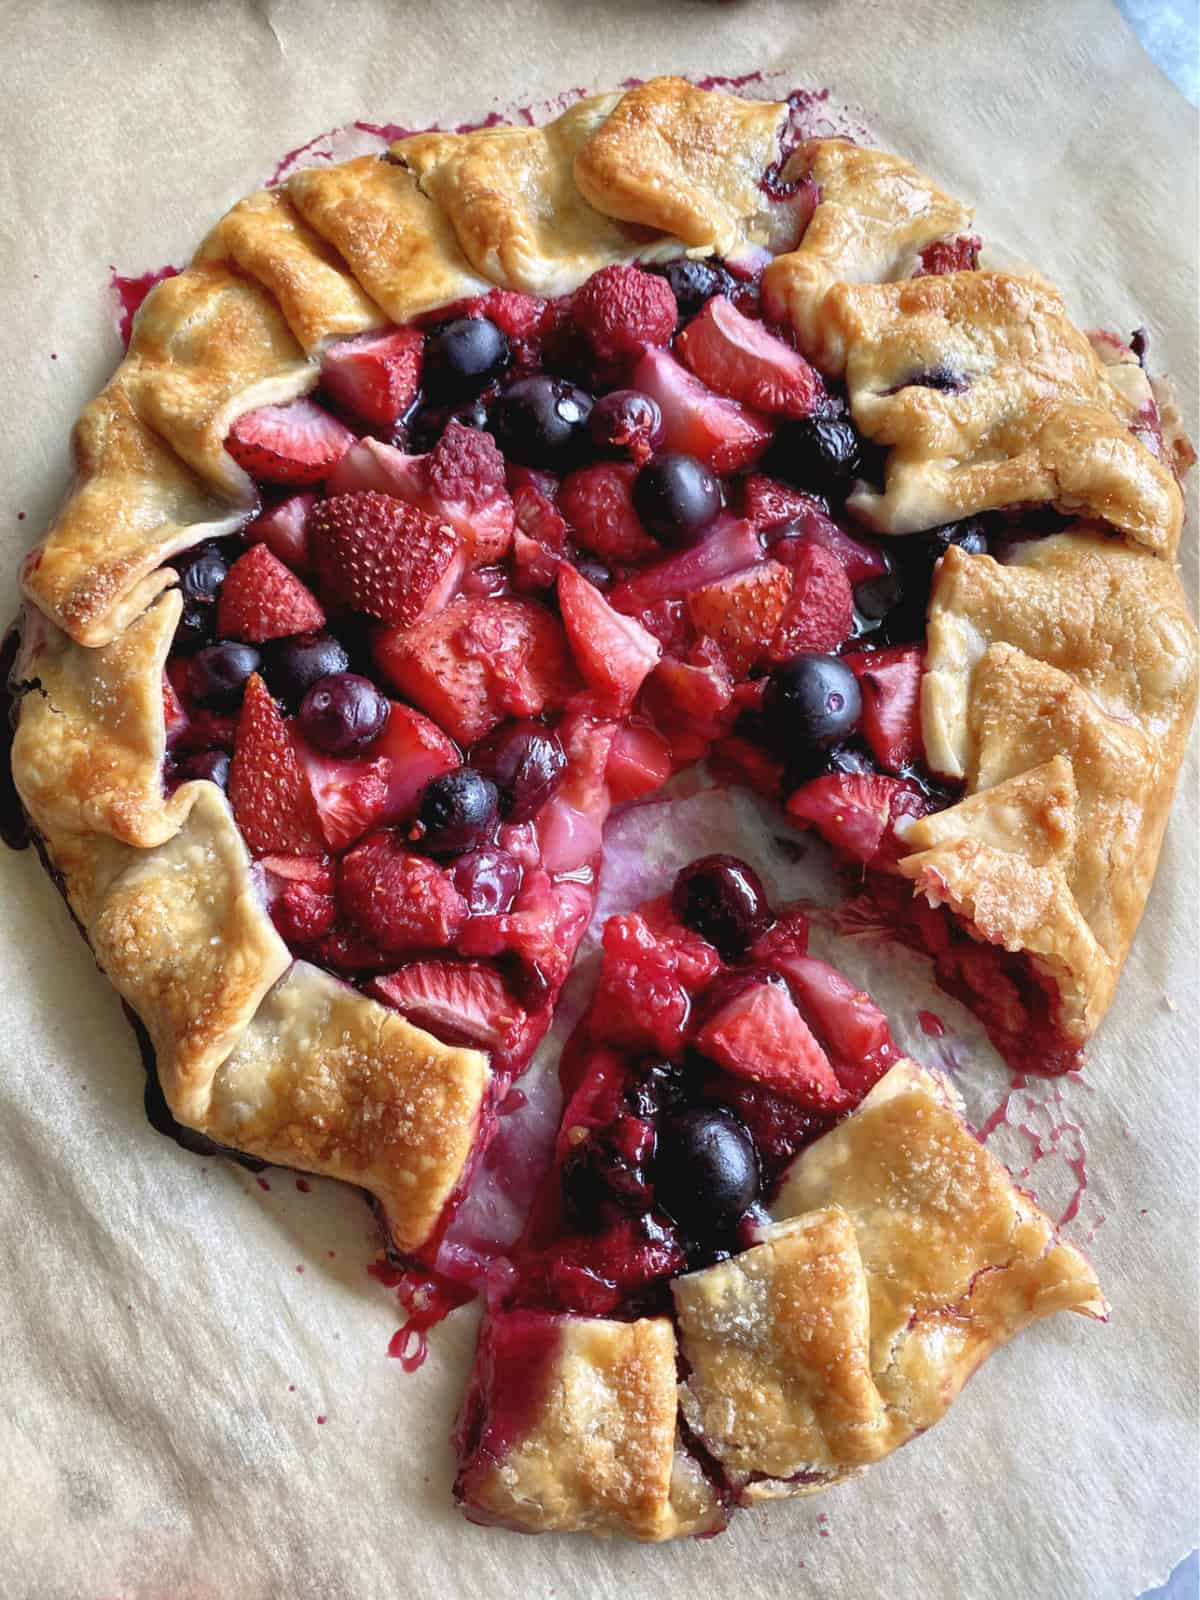 Top view of sliced open faced pie with berries and a slice cut out of it.